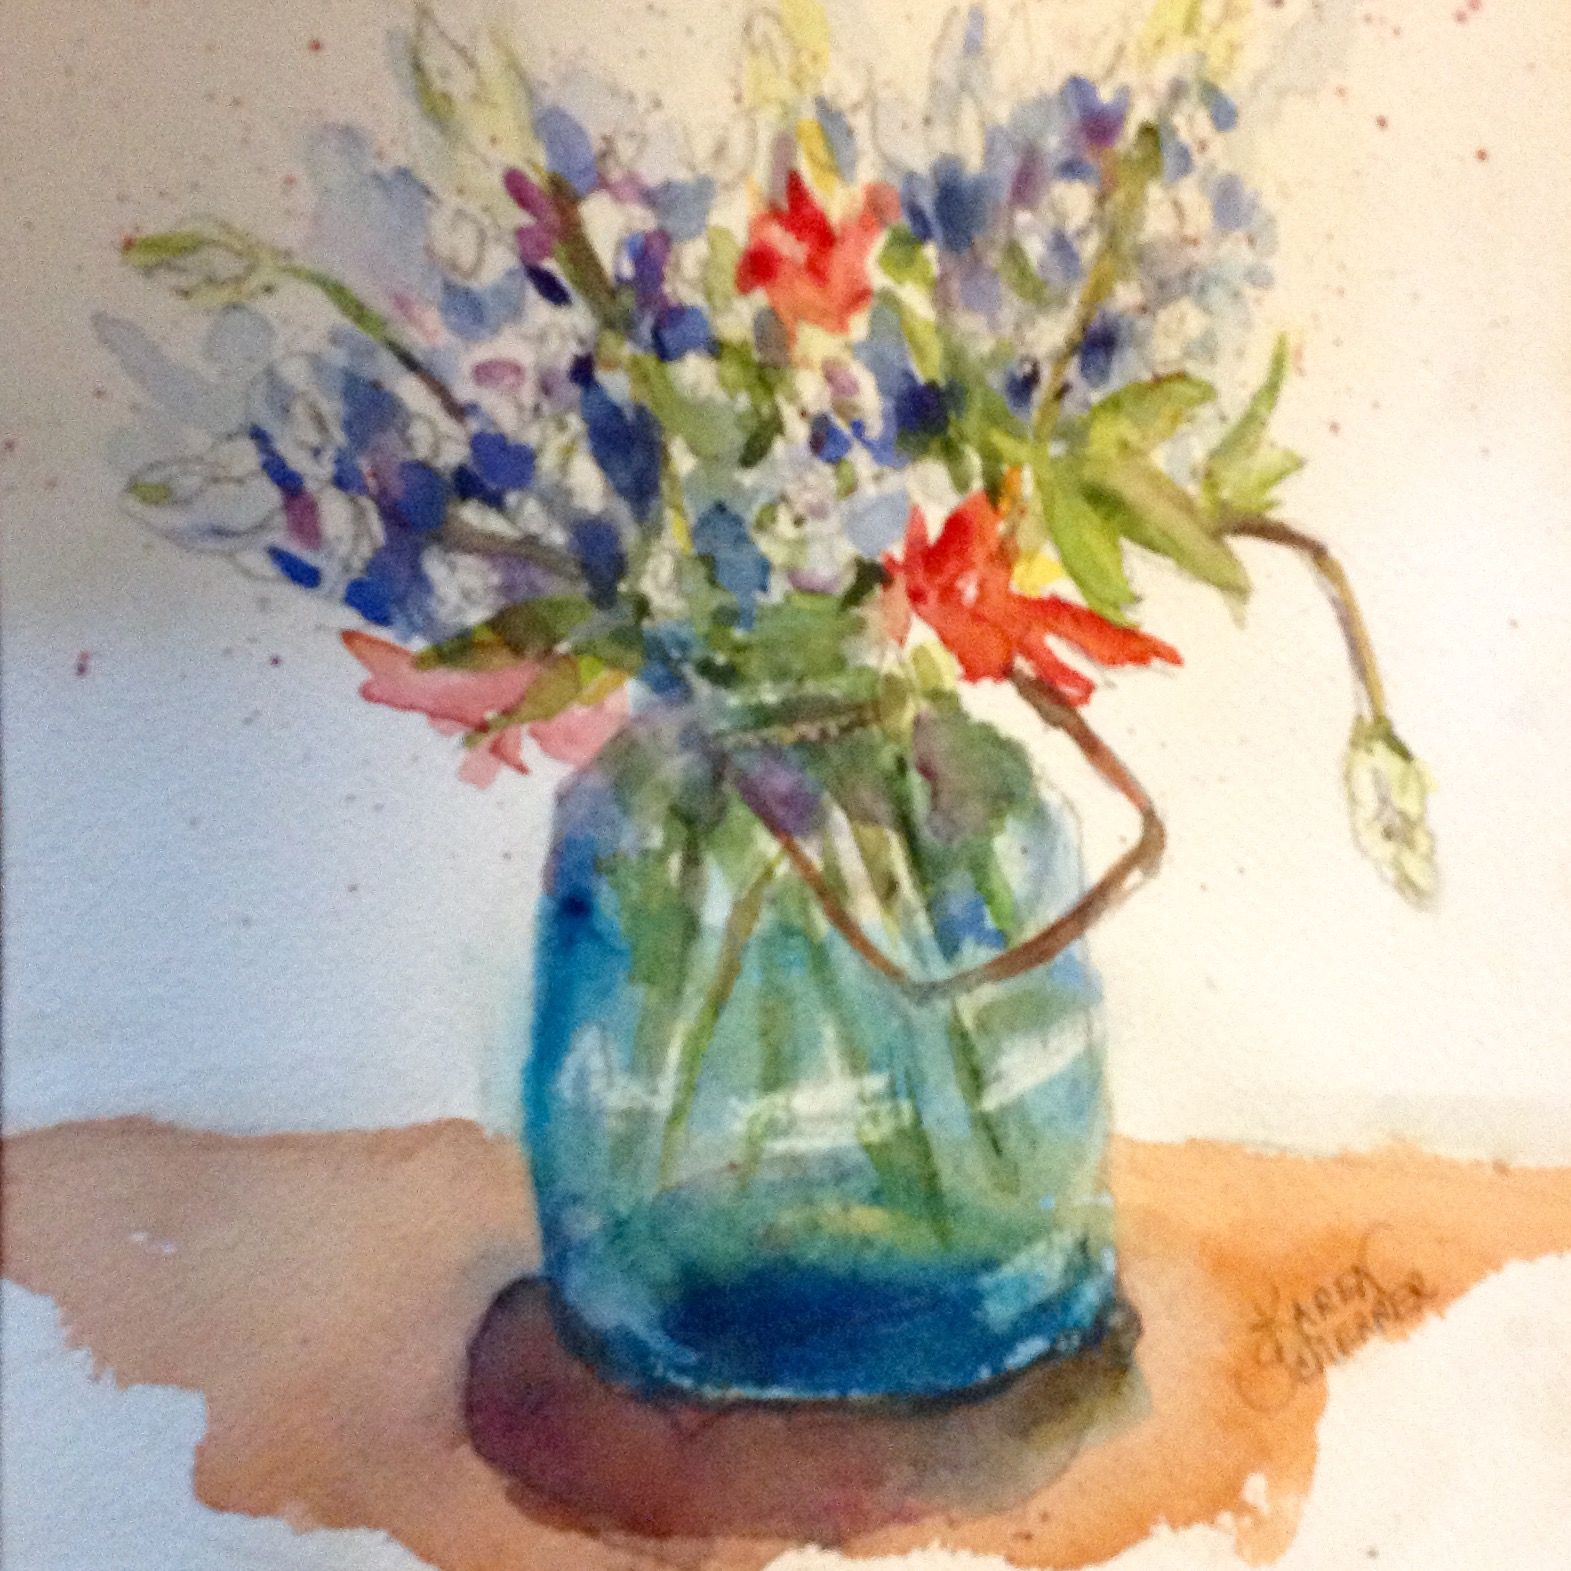 Watercolor artist in texas -  Bluebonnets And Paintbrush By Texas Watercolor Artist Karen Scherrer